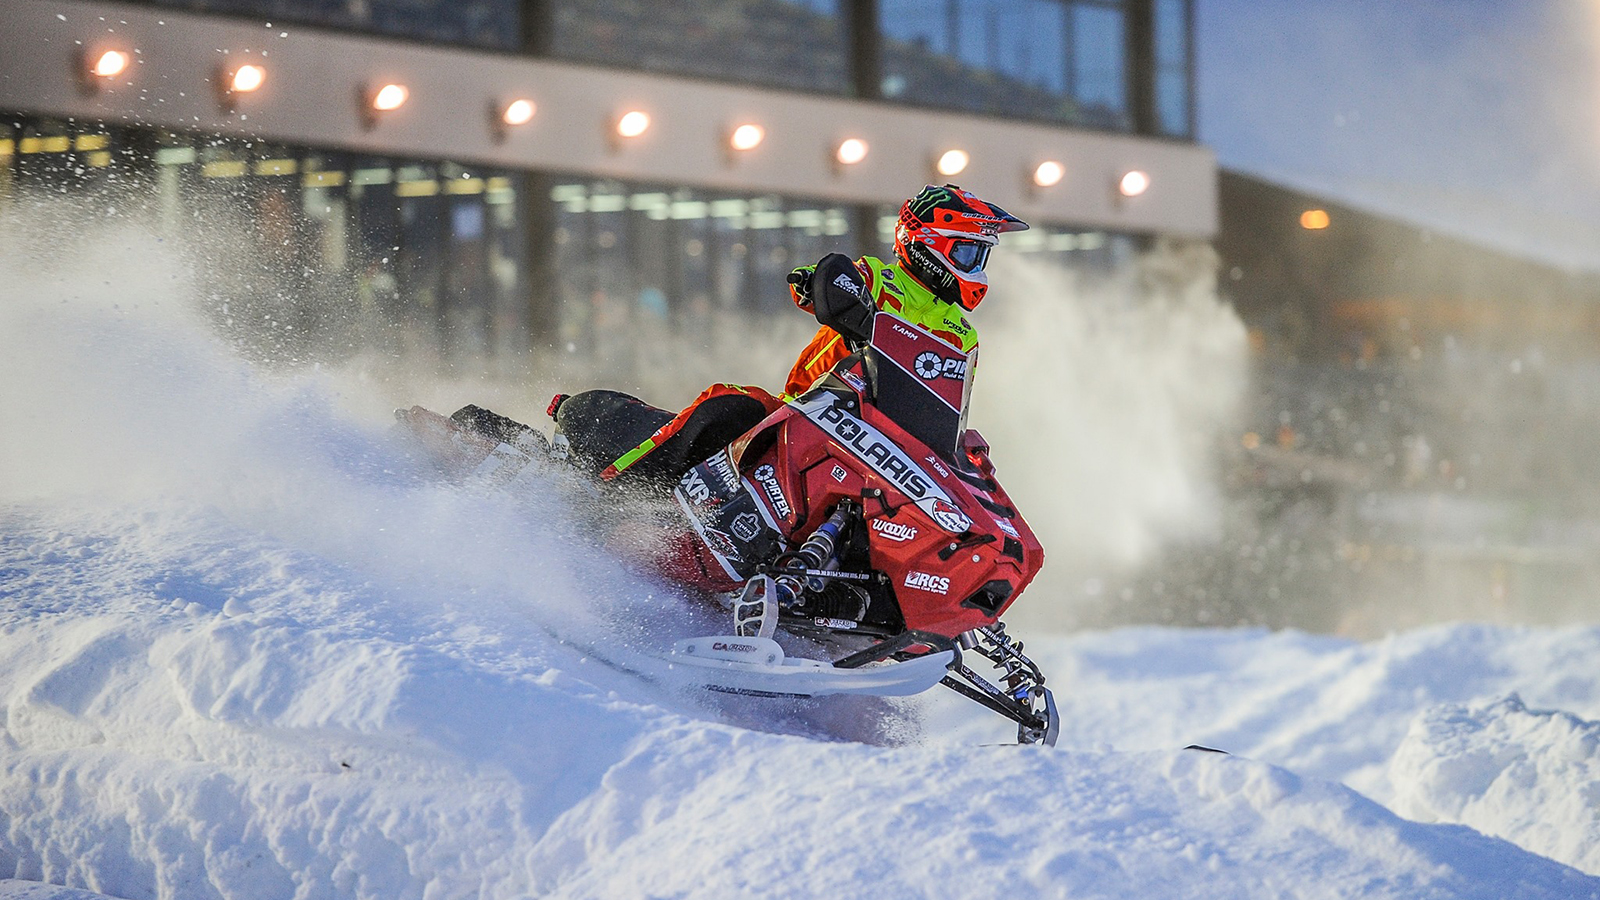 2020 Pirtek Snocross National